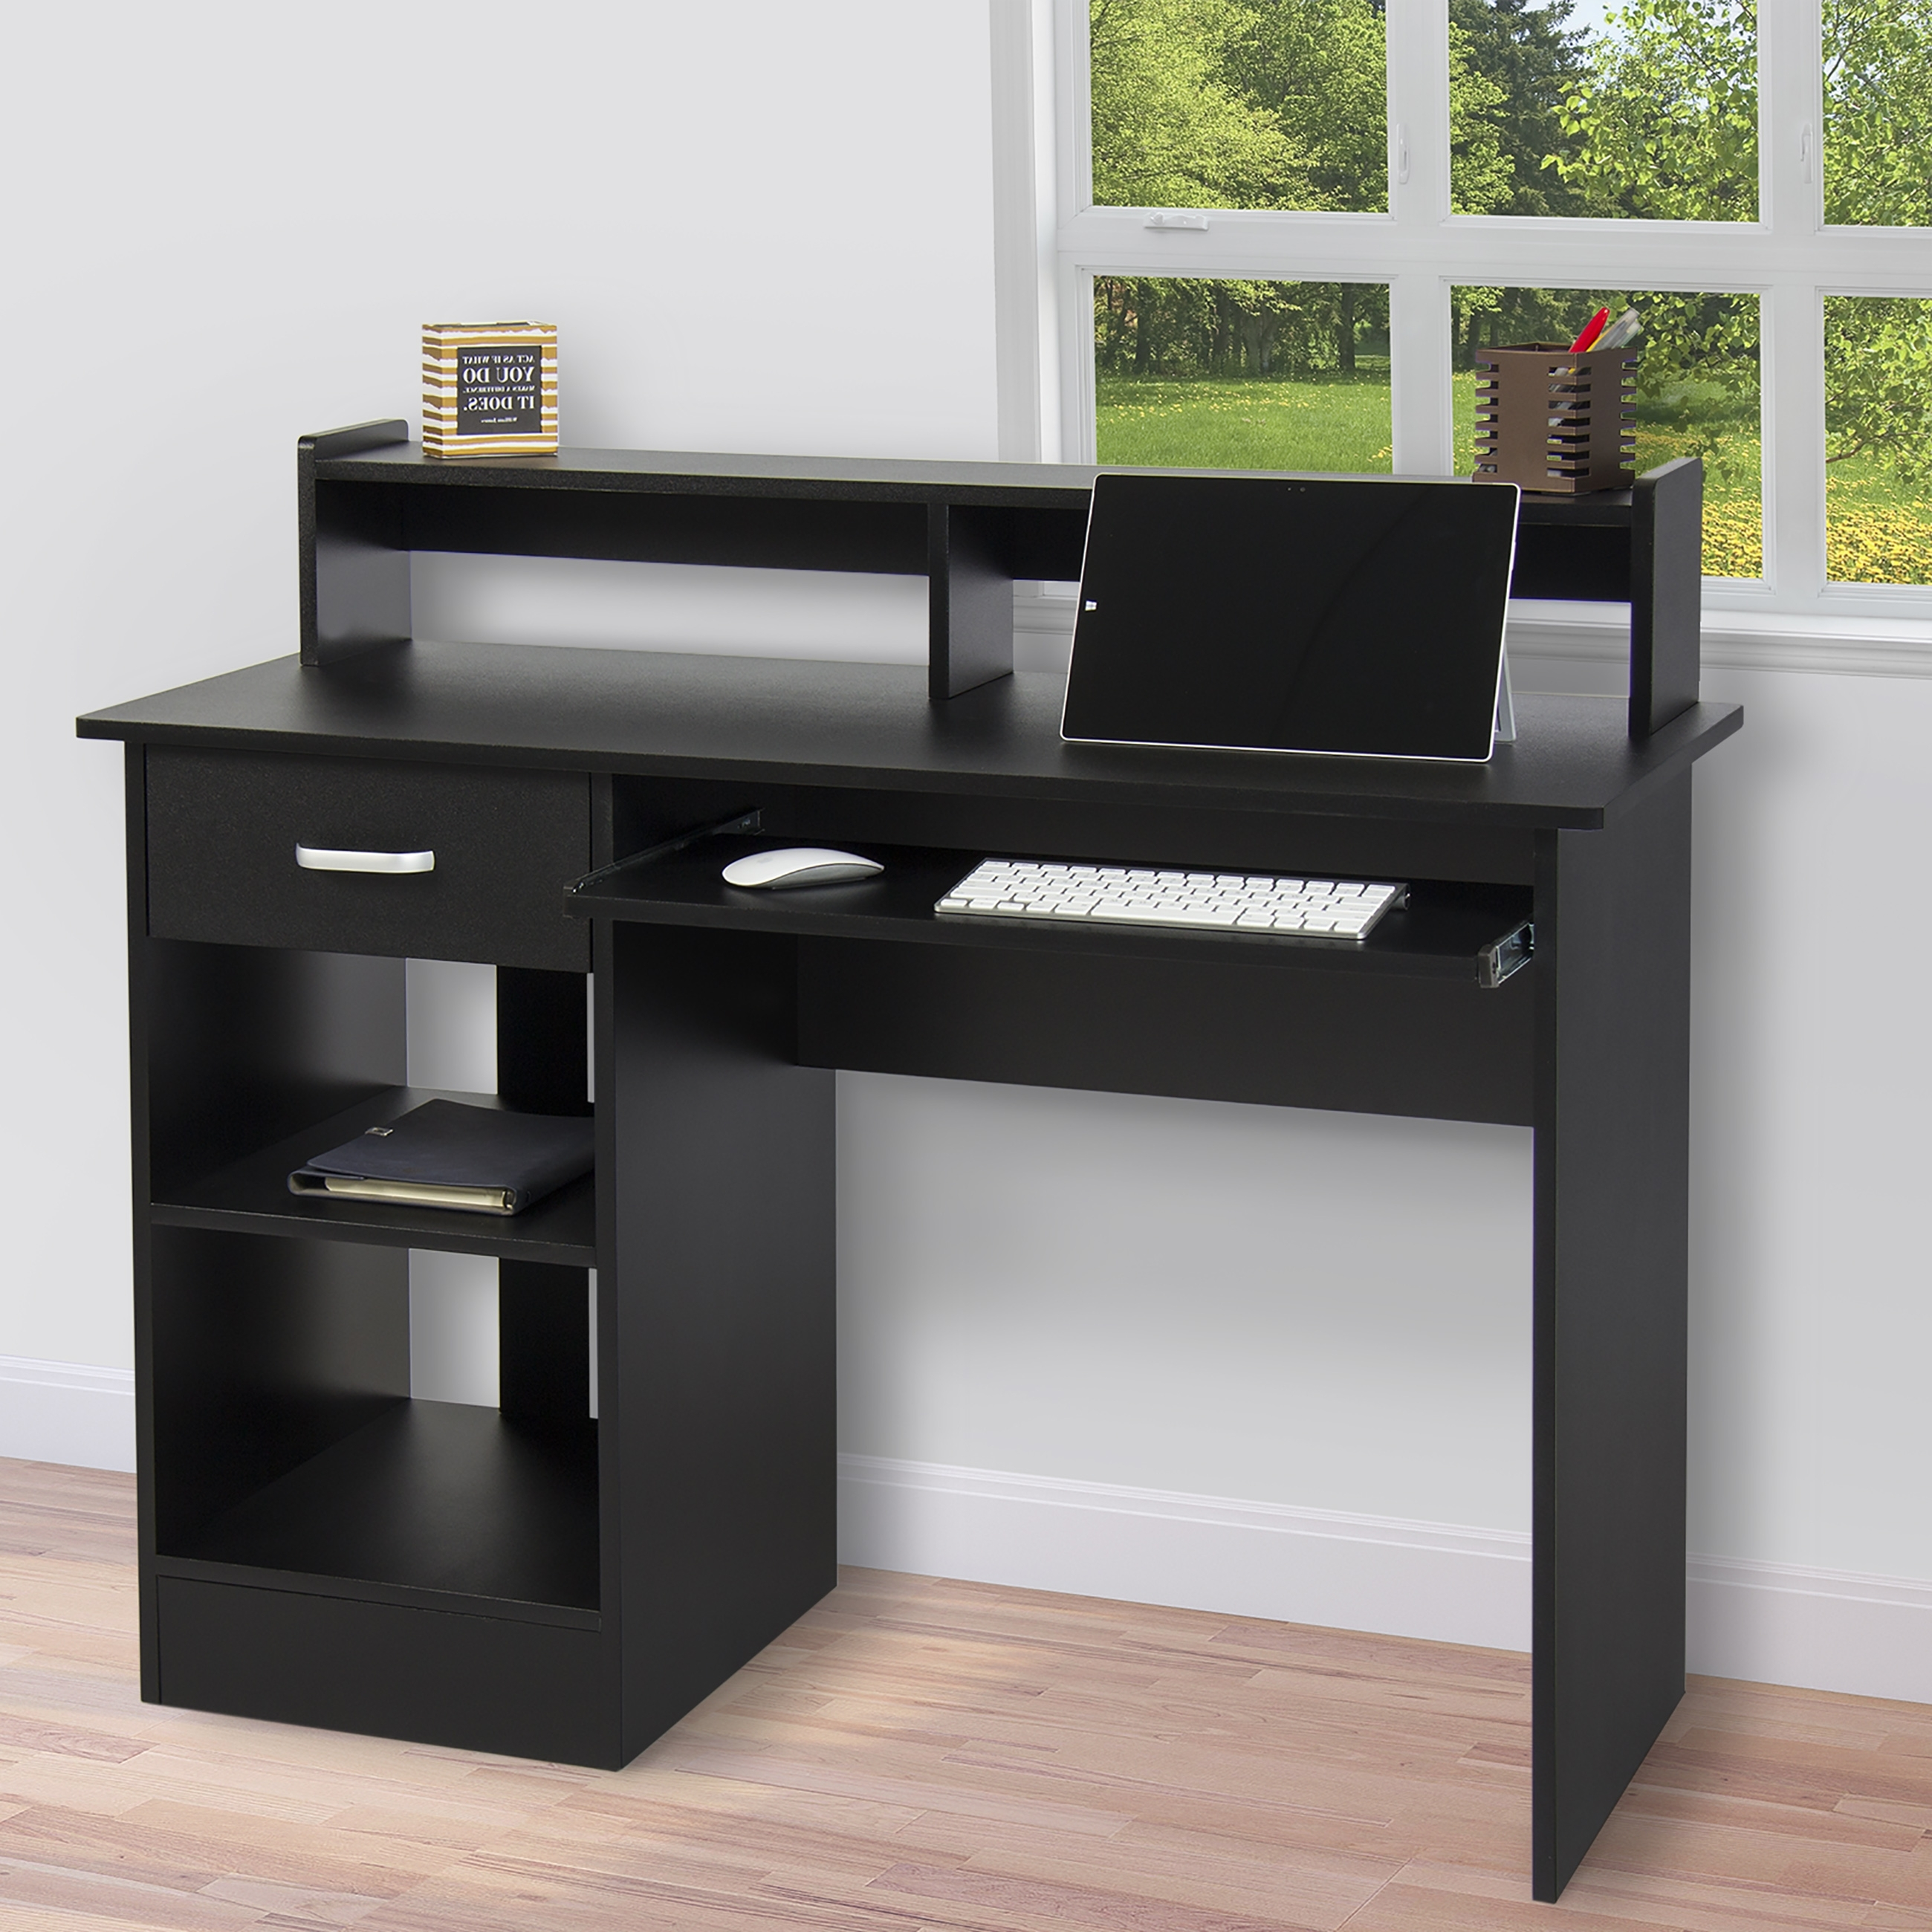 Rakuten: Best Choice Products Computer Desk Inside Computer Desks For Home (View 19 of 20)